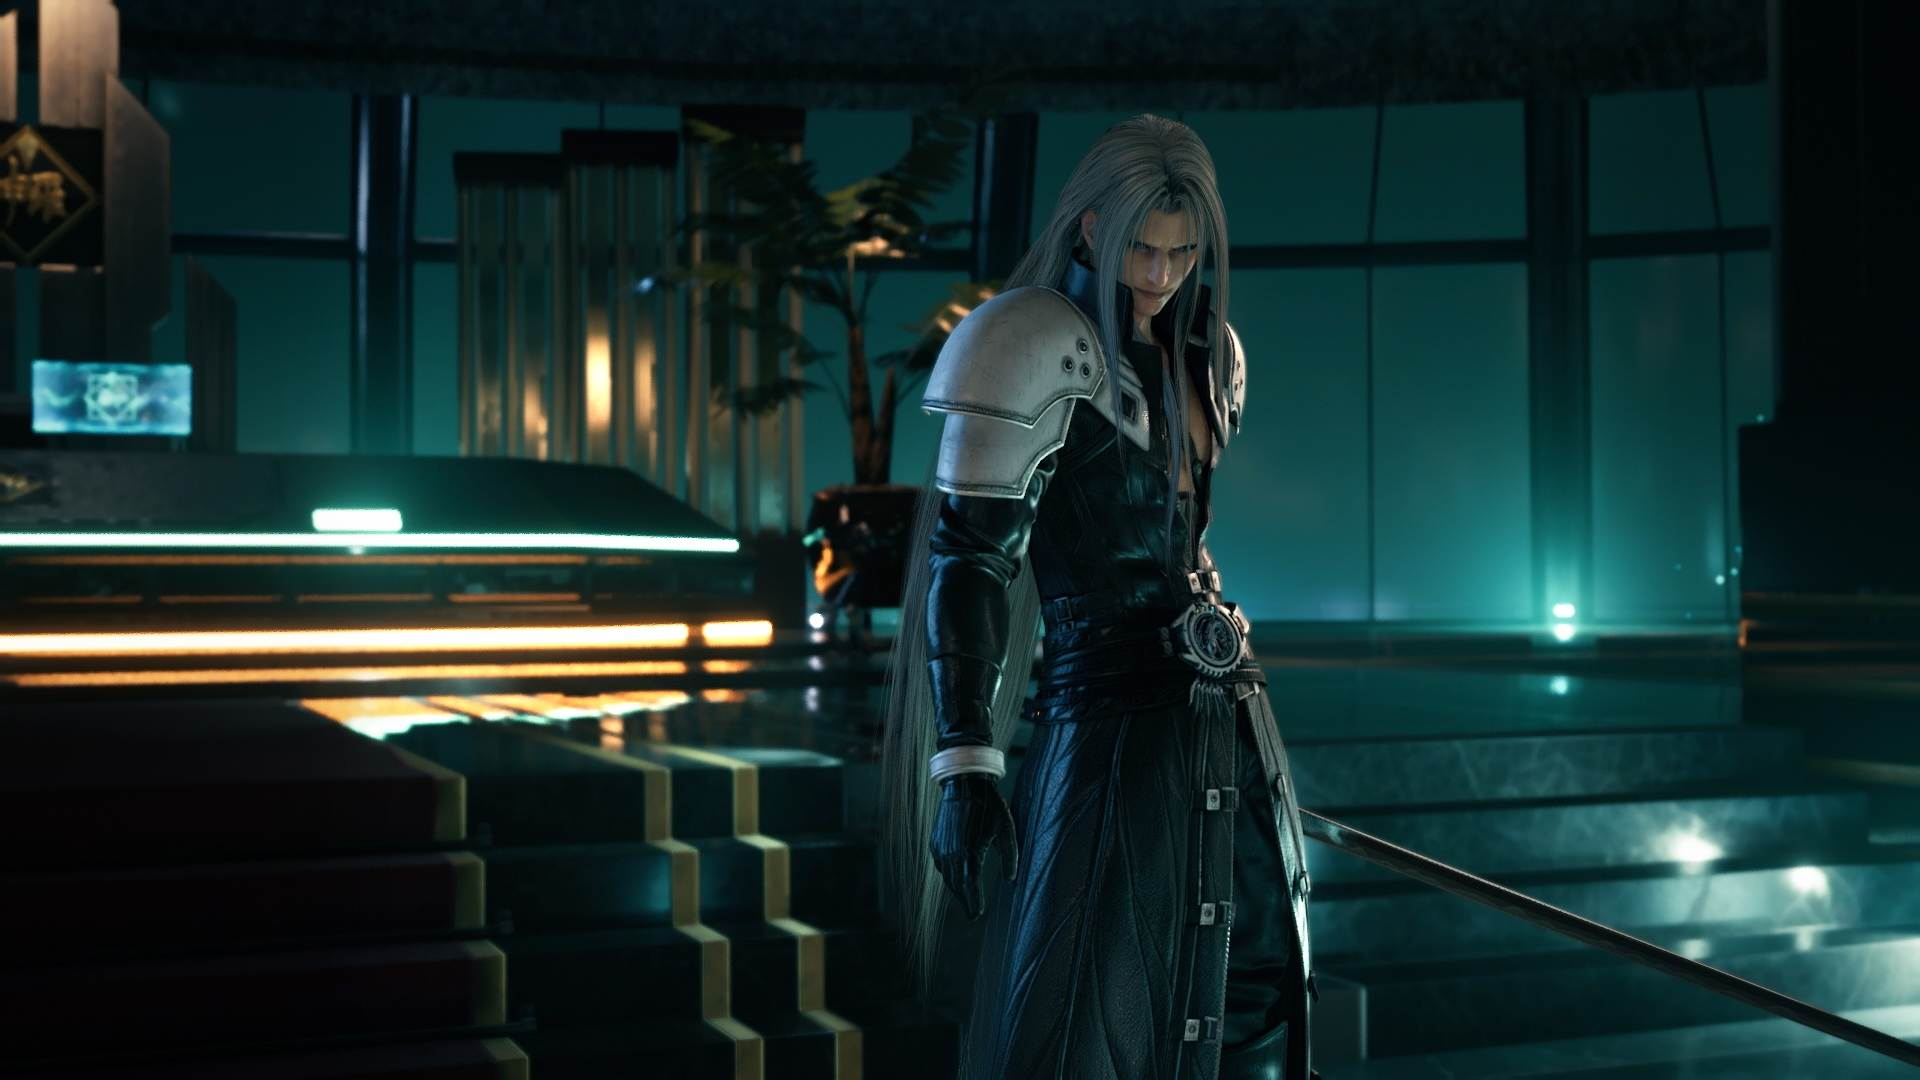 Sephiroth in Final Fantasy VII Remake